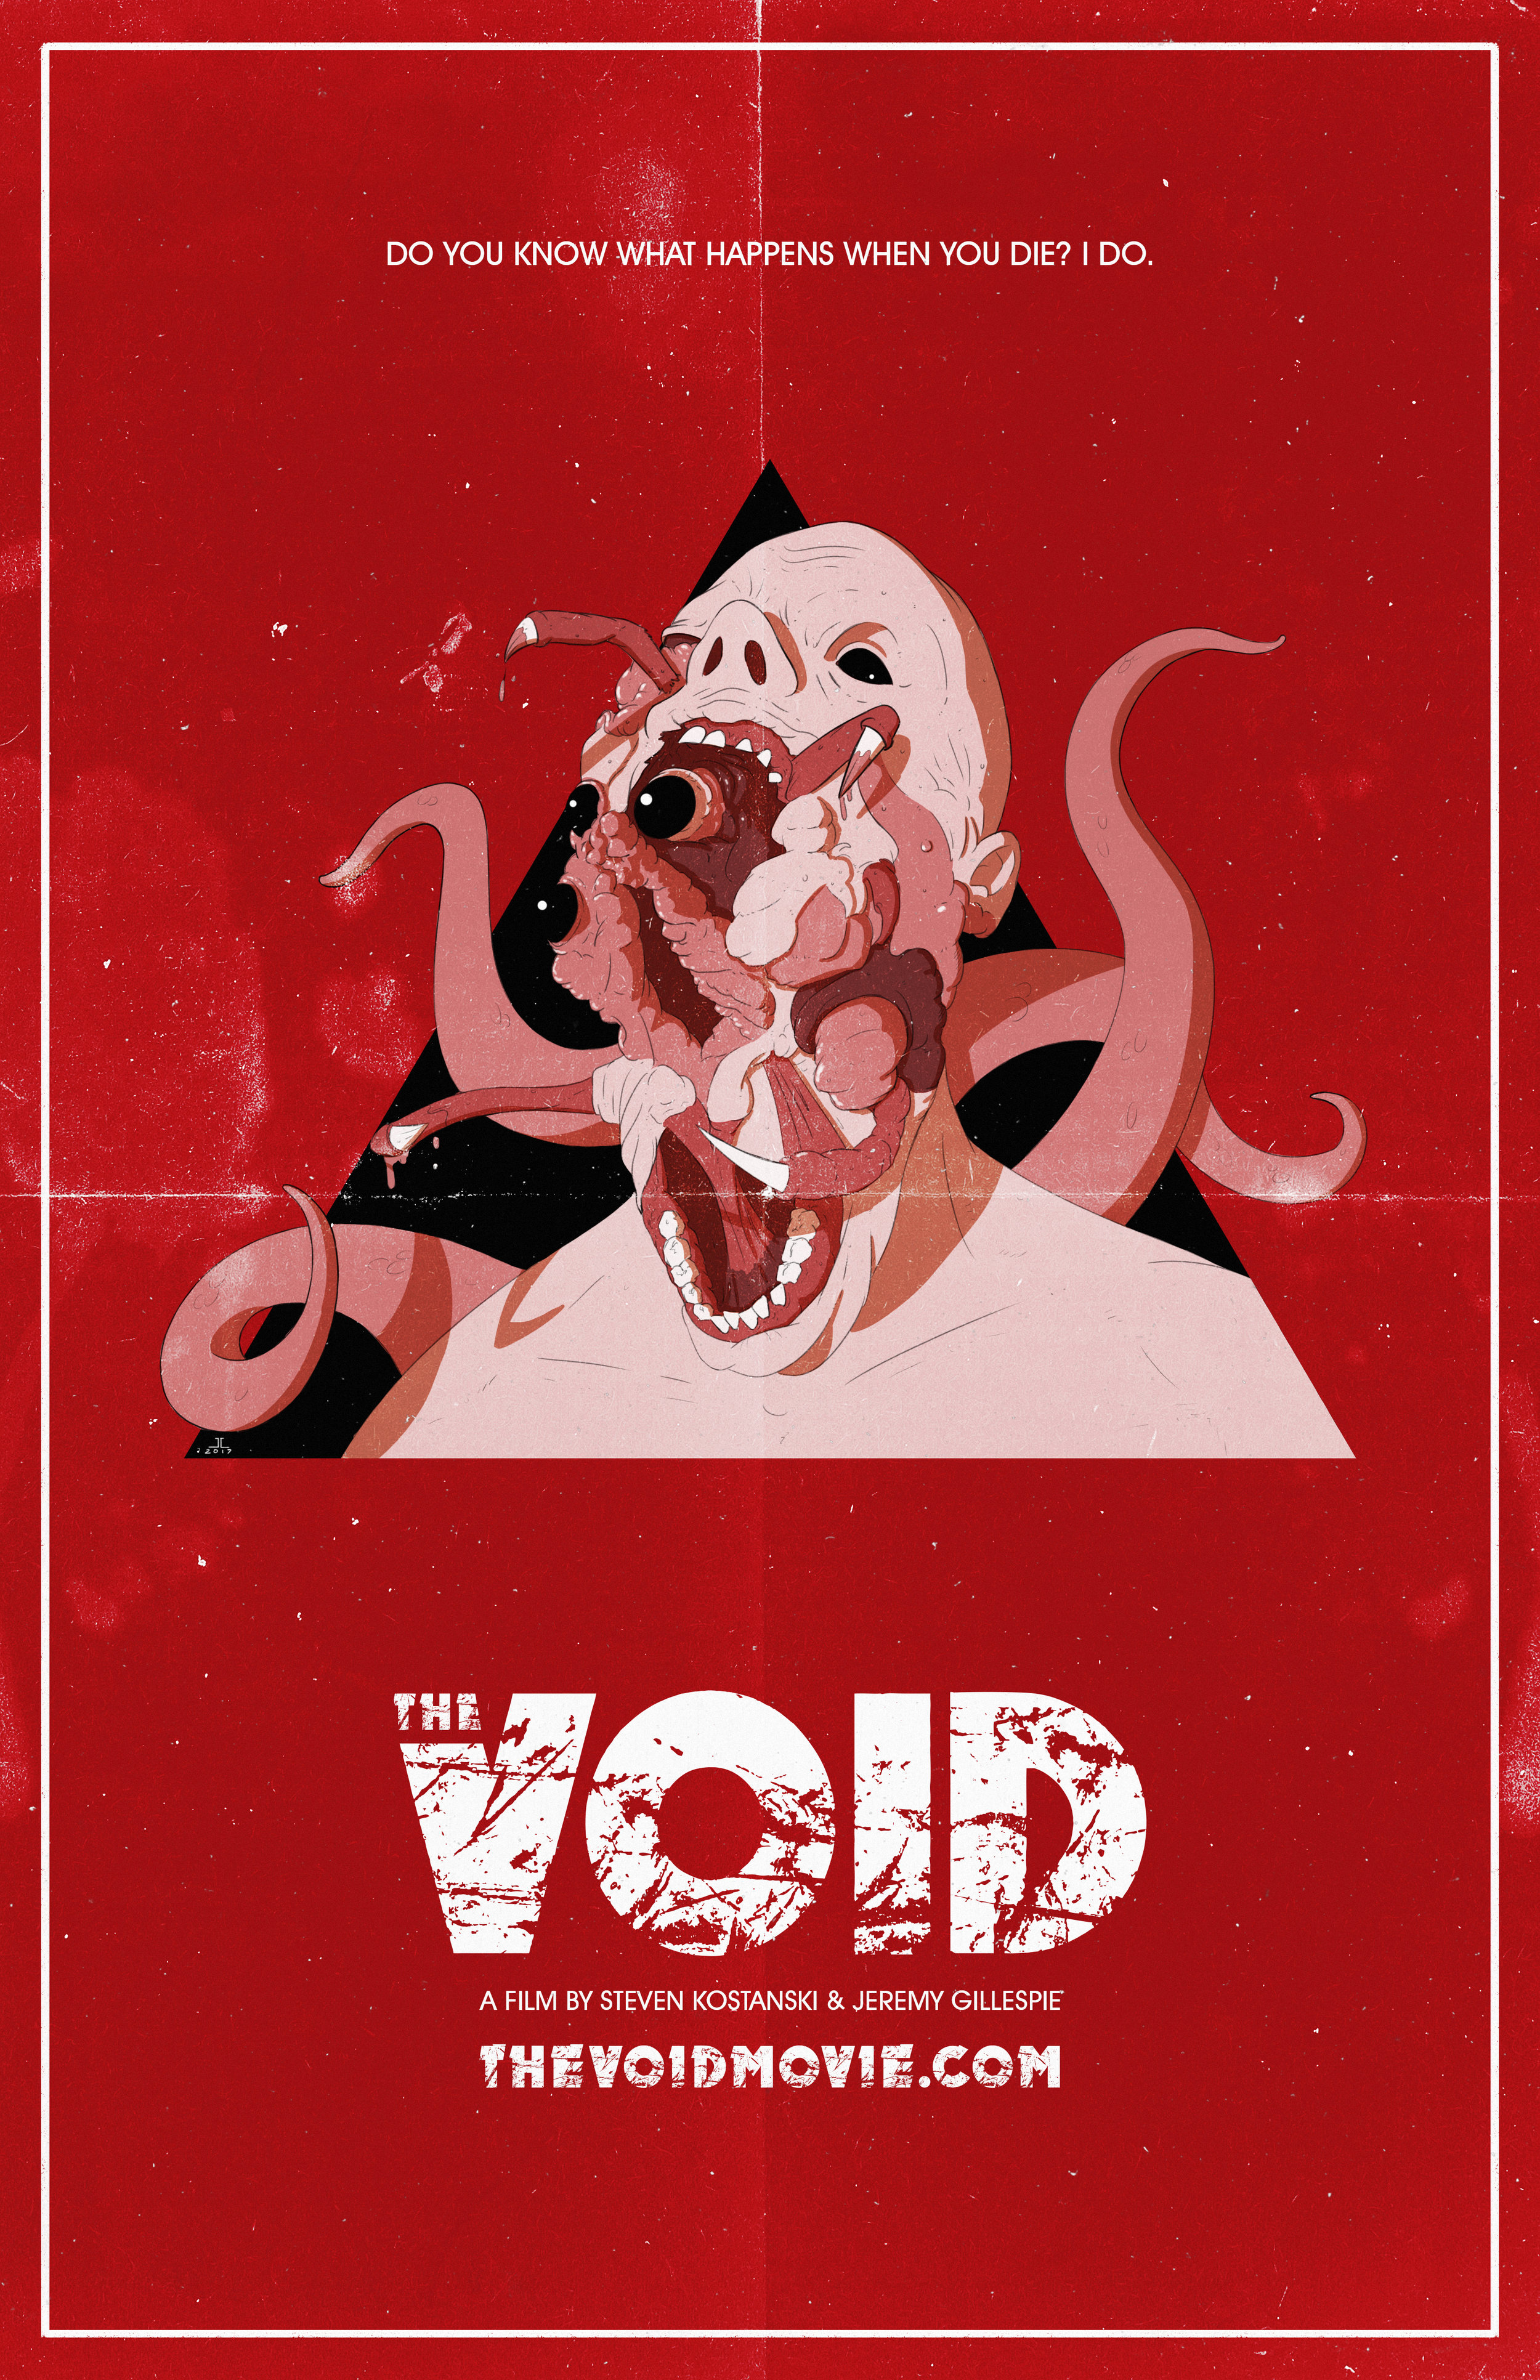 The Void Movie Poster